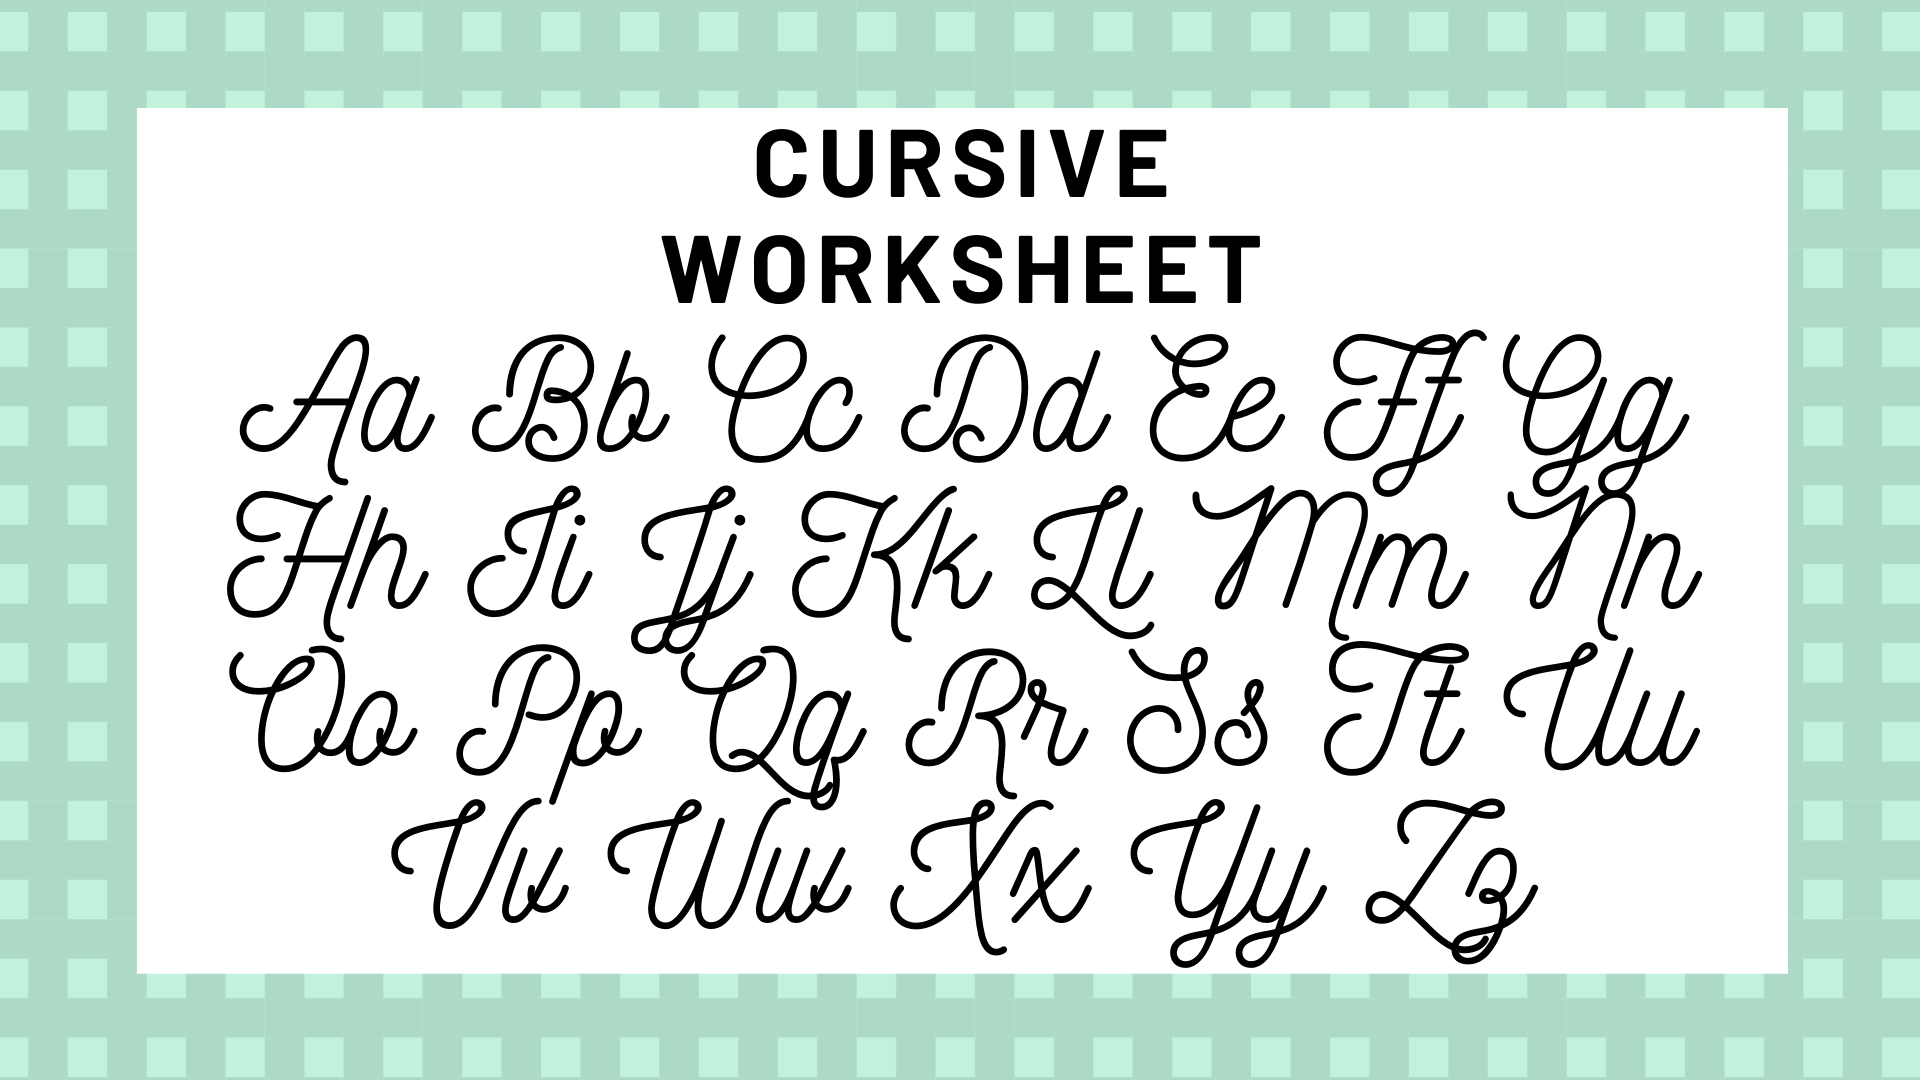 Cursive Alphabet: Your Guide To Cursive Writing   Science Trends